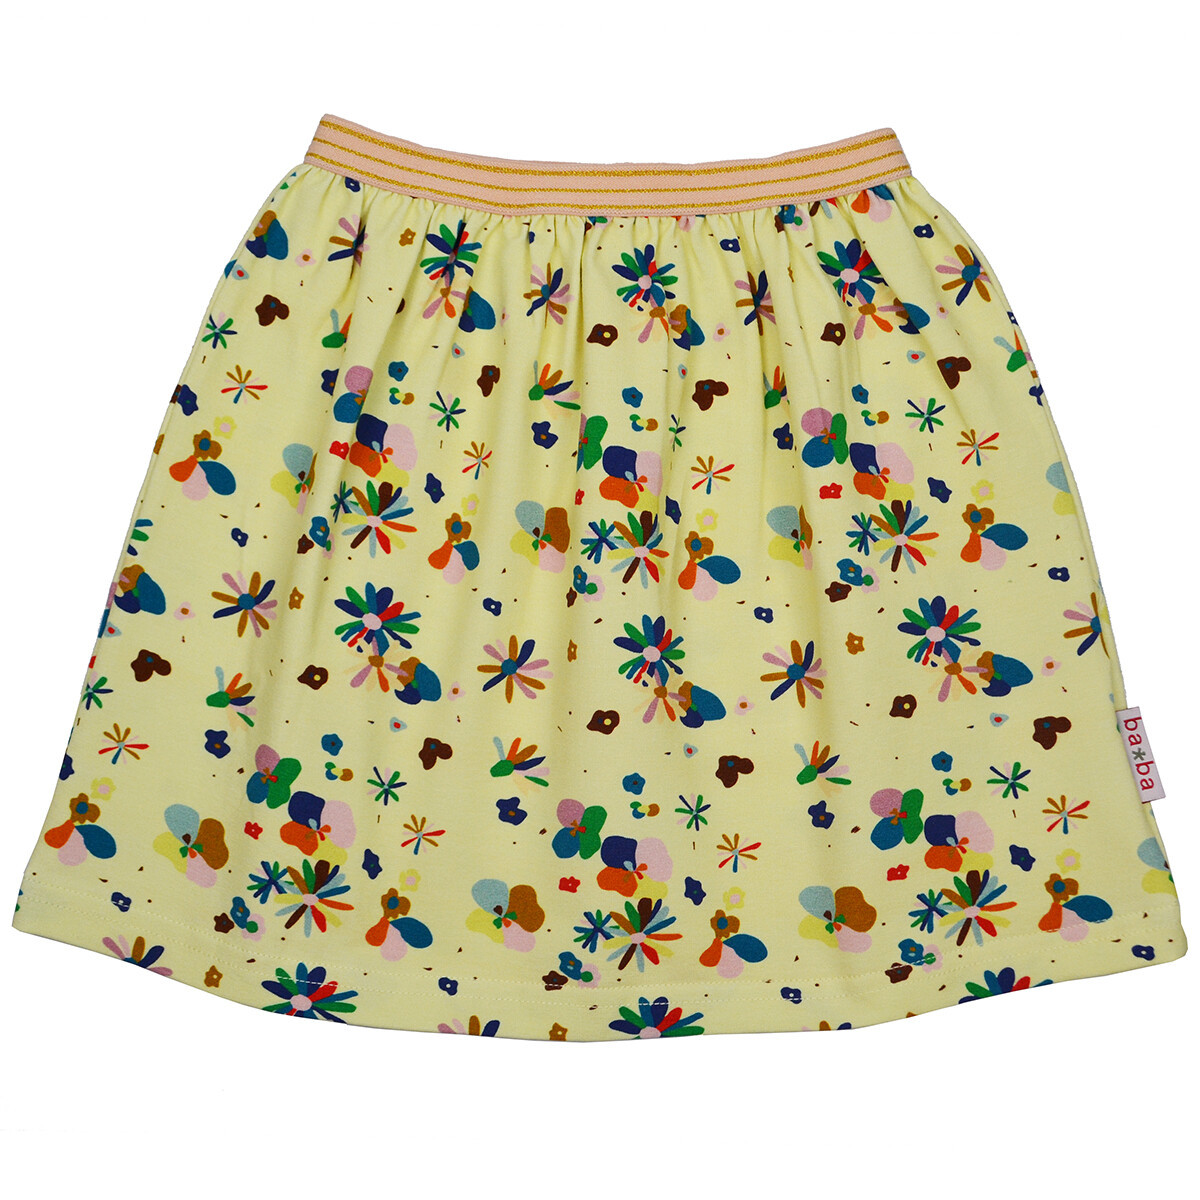 Bonny skirt - Flower field